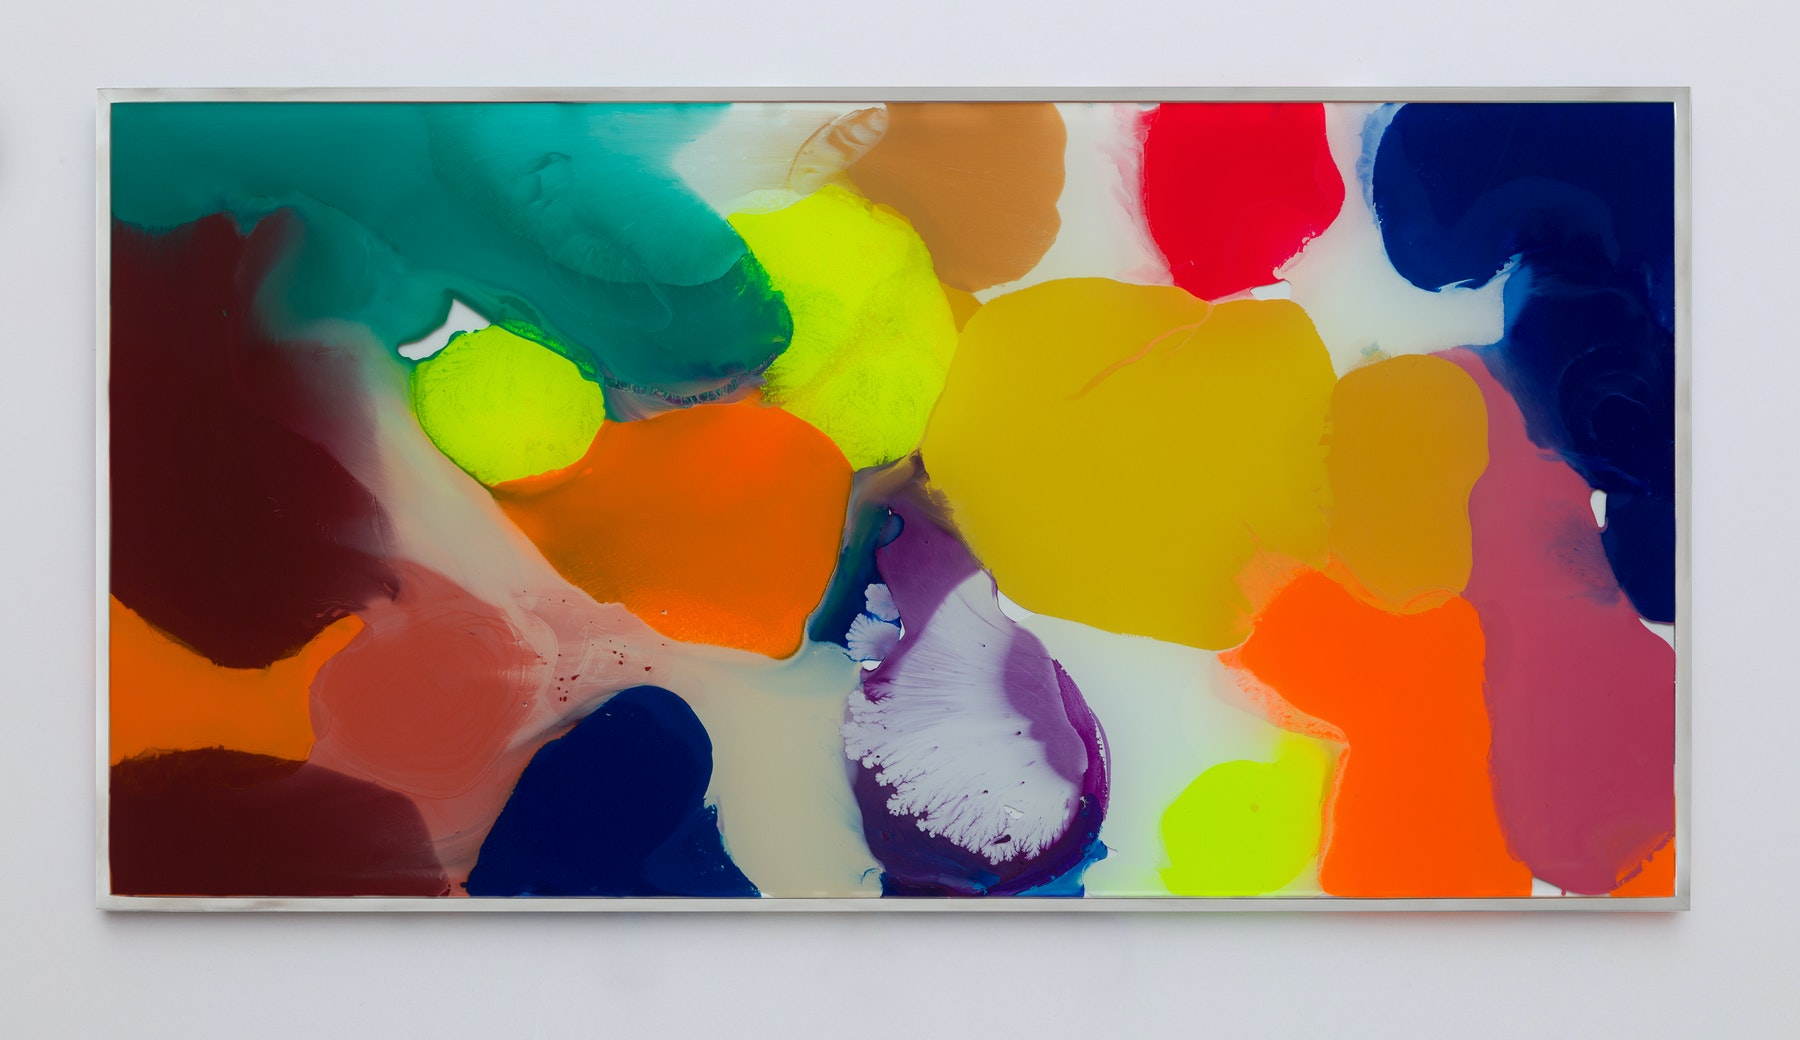 "Yunhee Min ""Up Close in Distance Study (variation study a3),"" 2018 Enamel on laminated glass 18.5 x 36.5"" [HxW] (46.99 x 92.71 cm) Inventory #MIN337 Courtesy of the artist and Vielmetter Los Angeles Photo credit: Brica Wilcox"